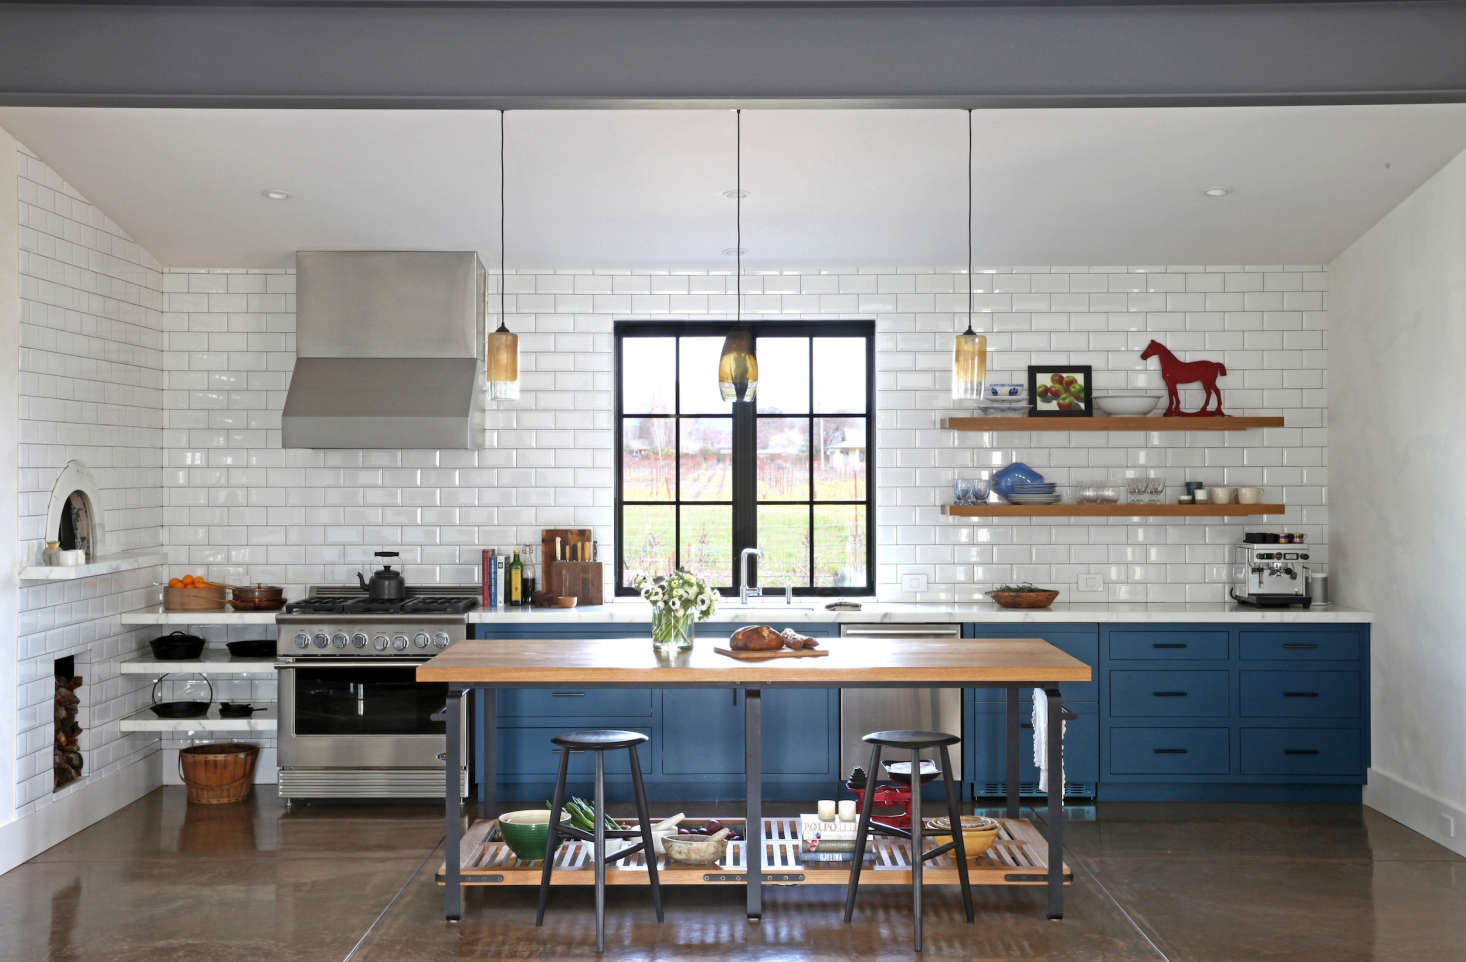 Custom Cabinets Are Painted In Benjamin Mooreu0027s Blue Danube In The Sonoma,  California Kitchen Of